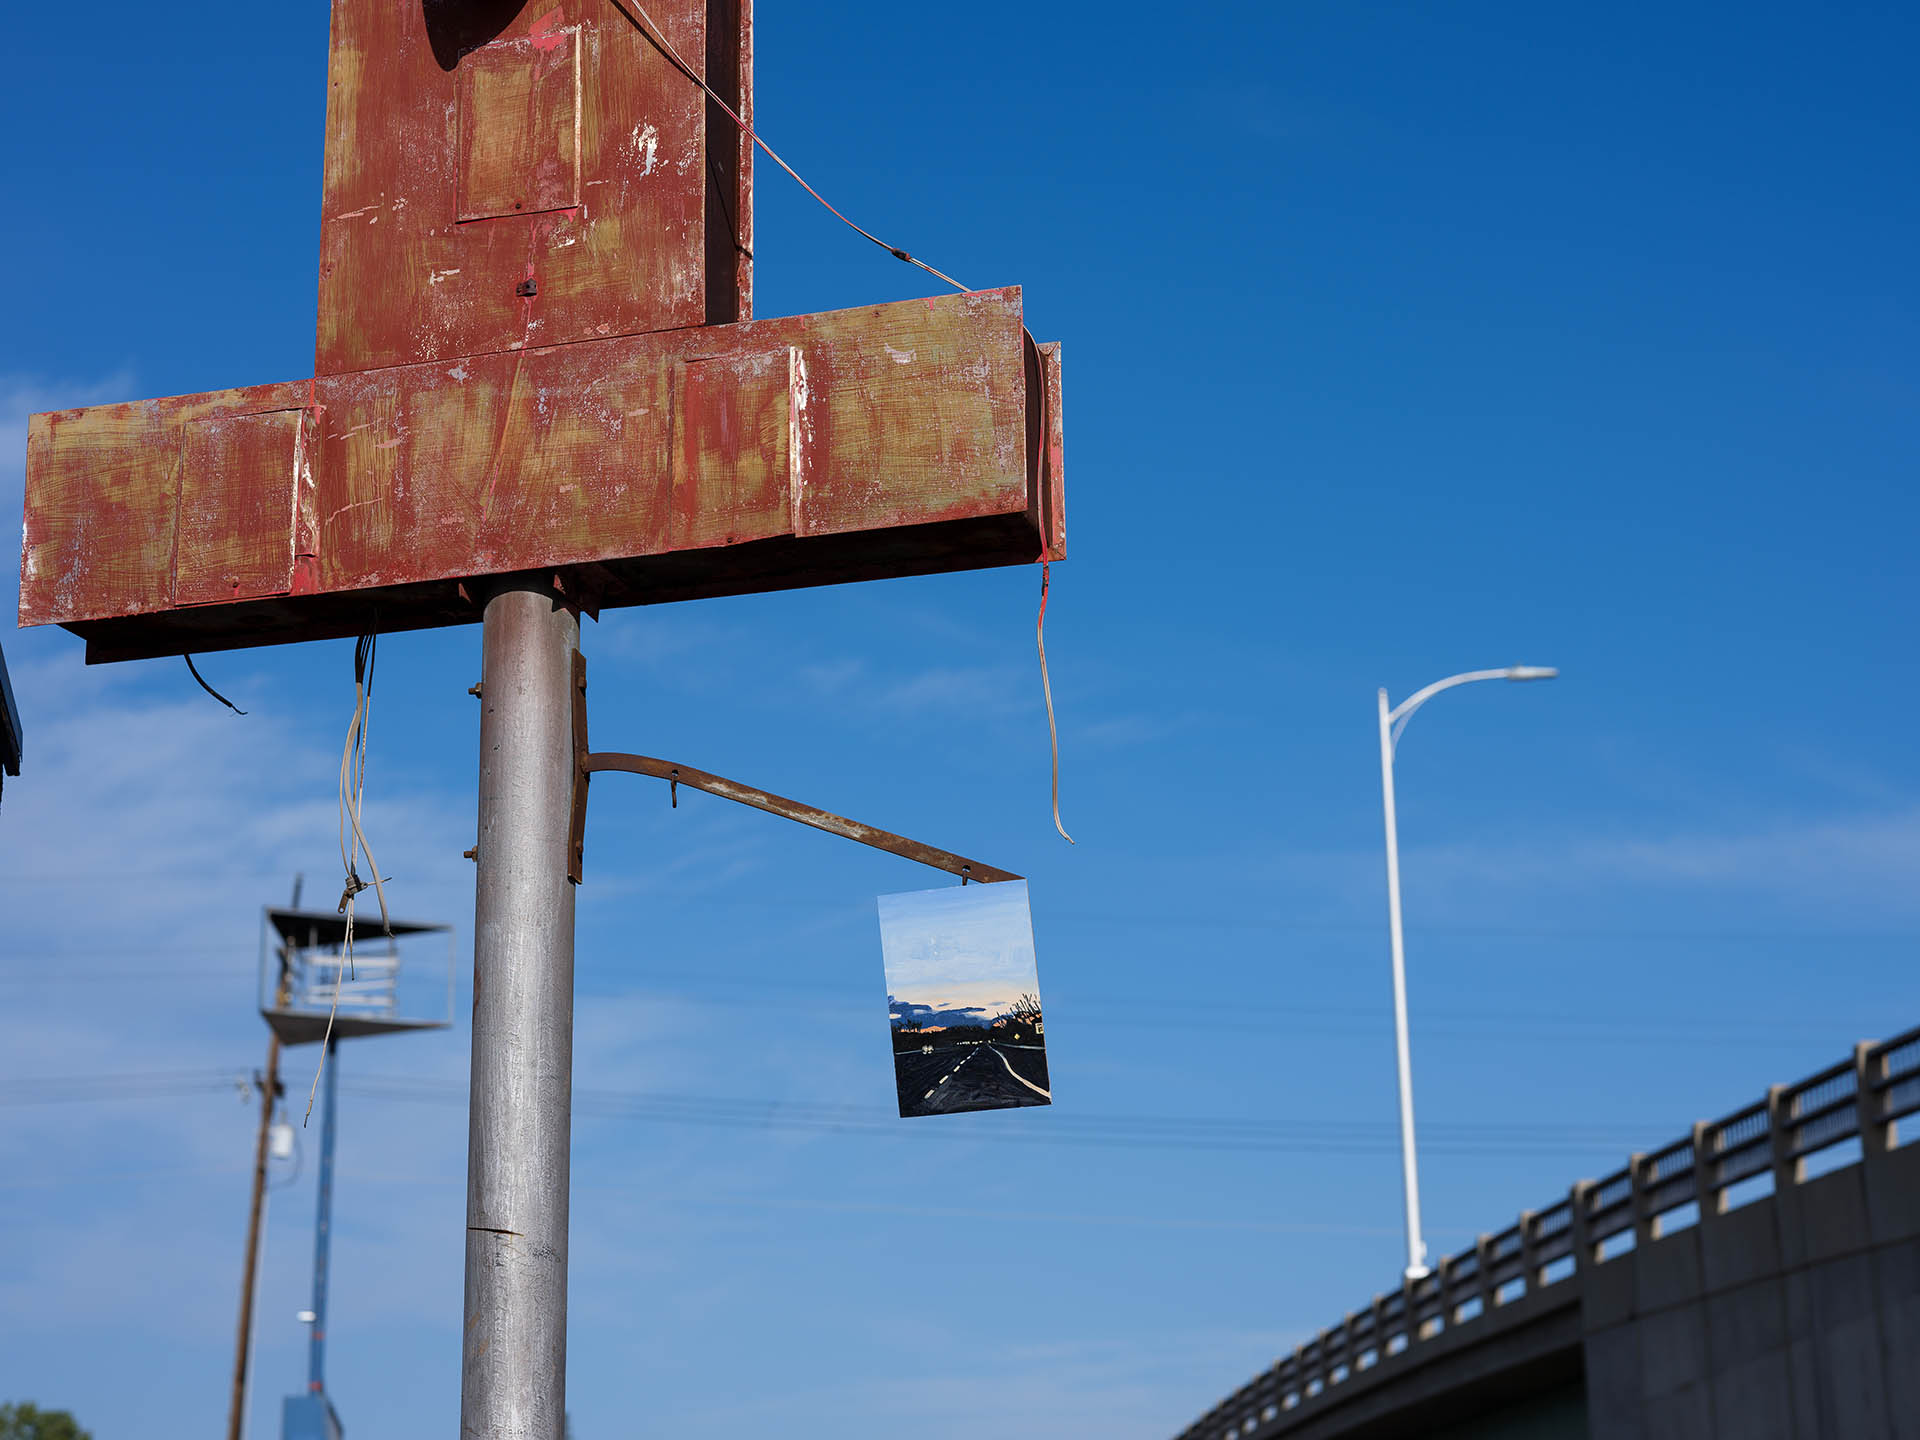 An installation view of Claudia Keep's painting, Missed Exit, captured by photographer Tag Christof in the Western United States in 2021 for MARCH. The image shows a painting hung on a sign.